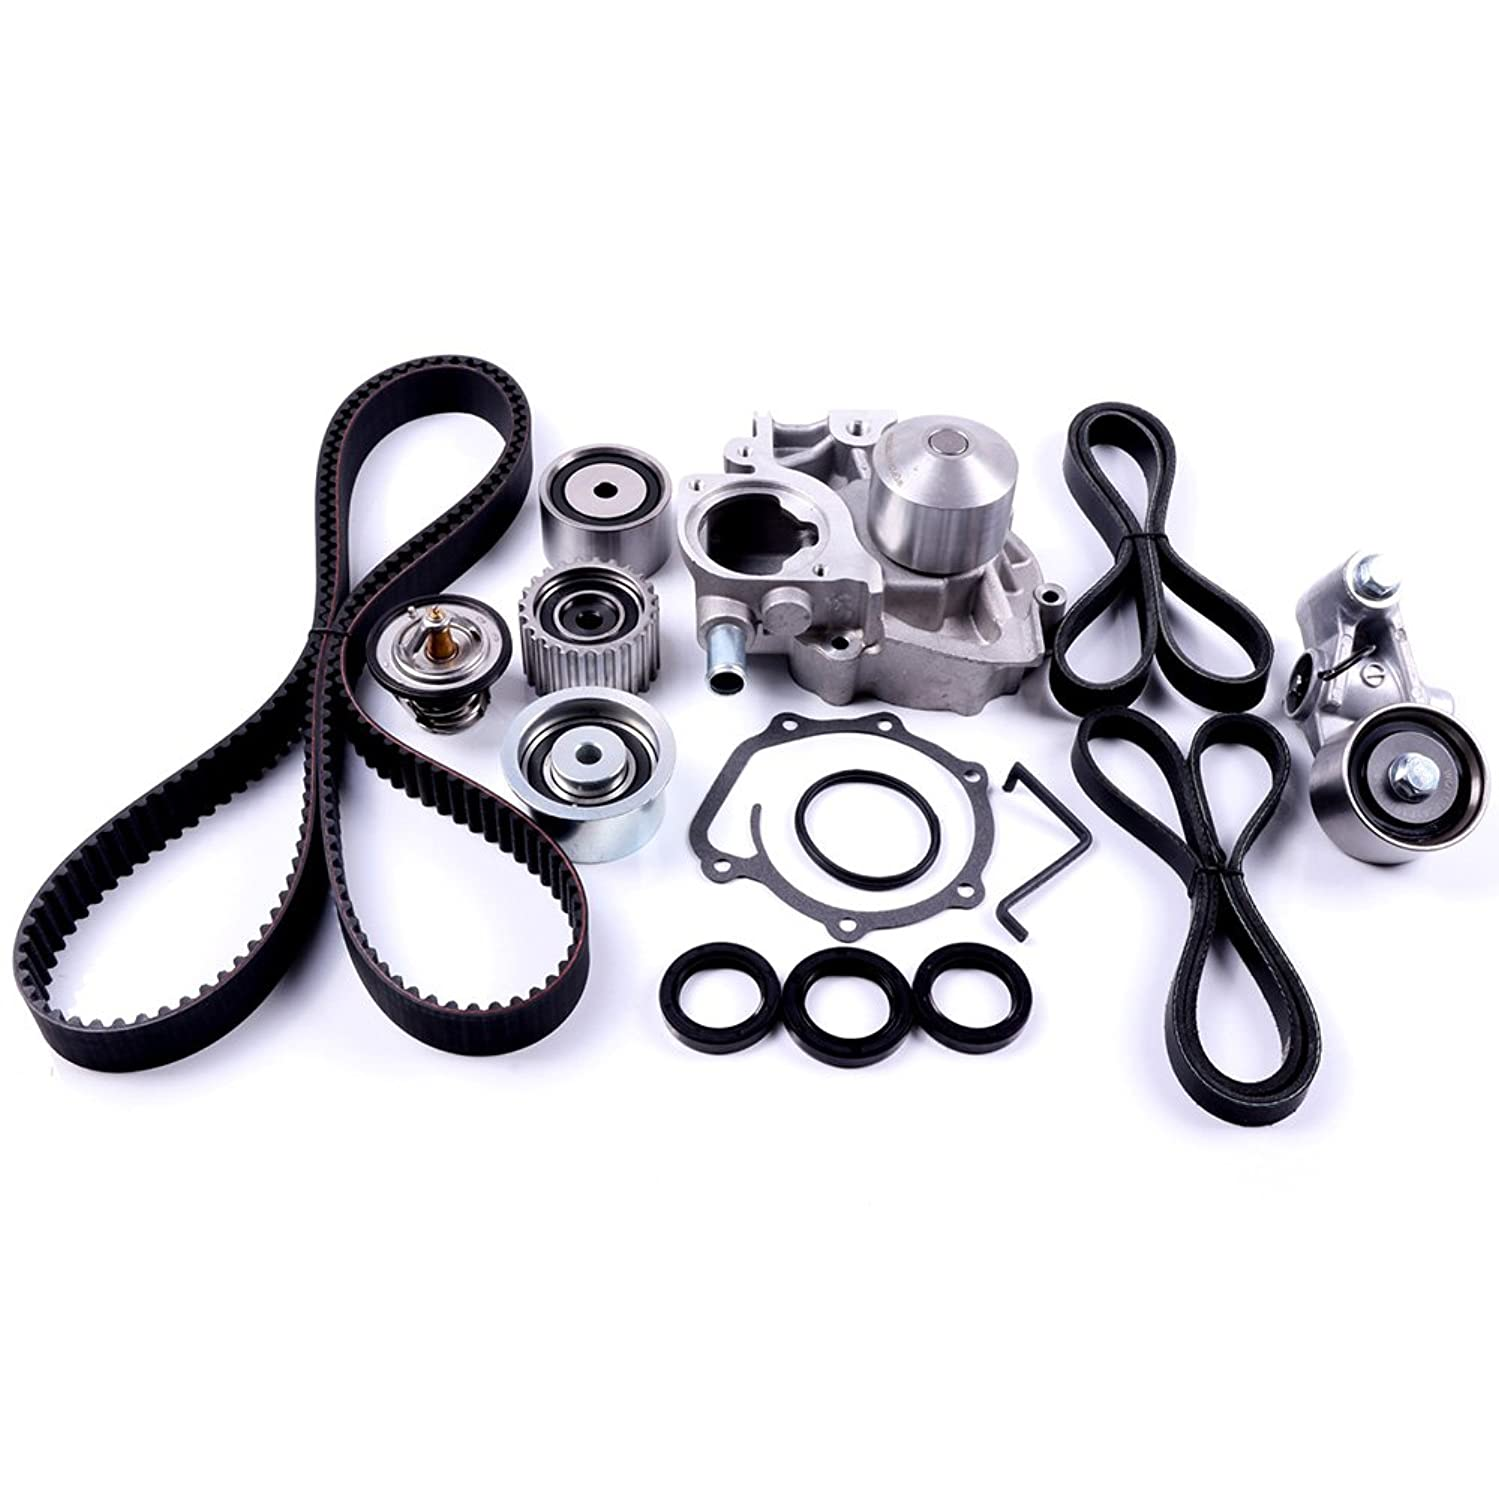 SCITOO Engine Timing Part Belt Set Timing Belt Kits, fit Subaru Outback 2.5L SOHC H4 Non-Turbo 2006-2009 Replacement Timing Tools with Water Pump